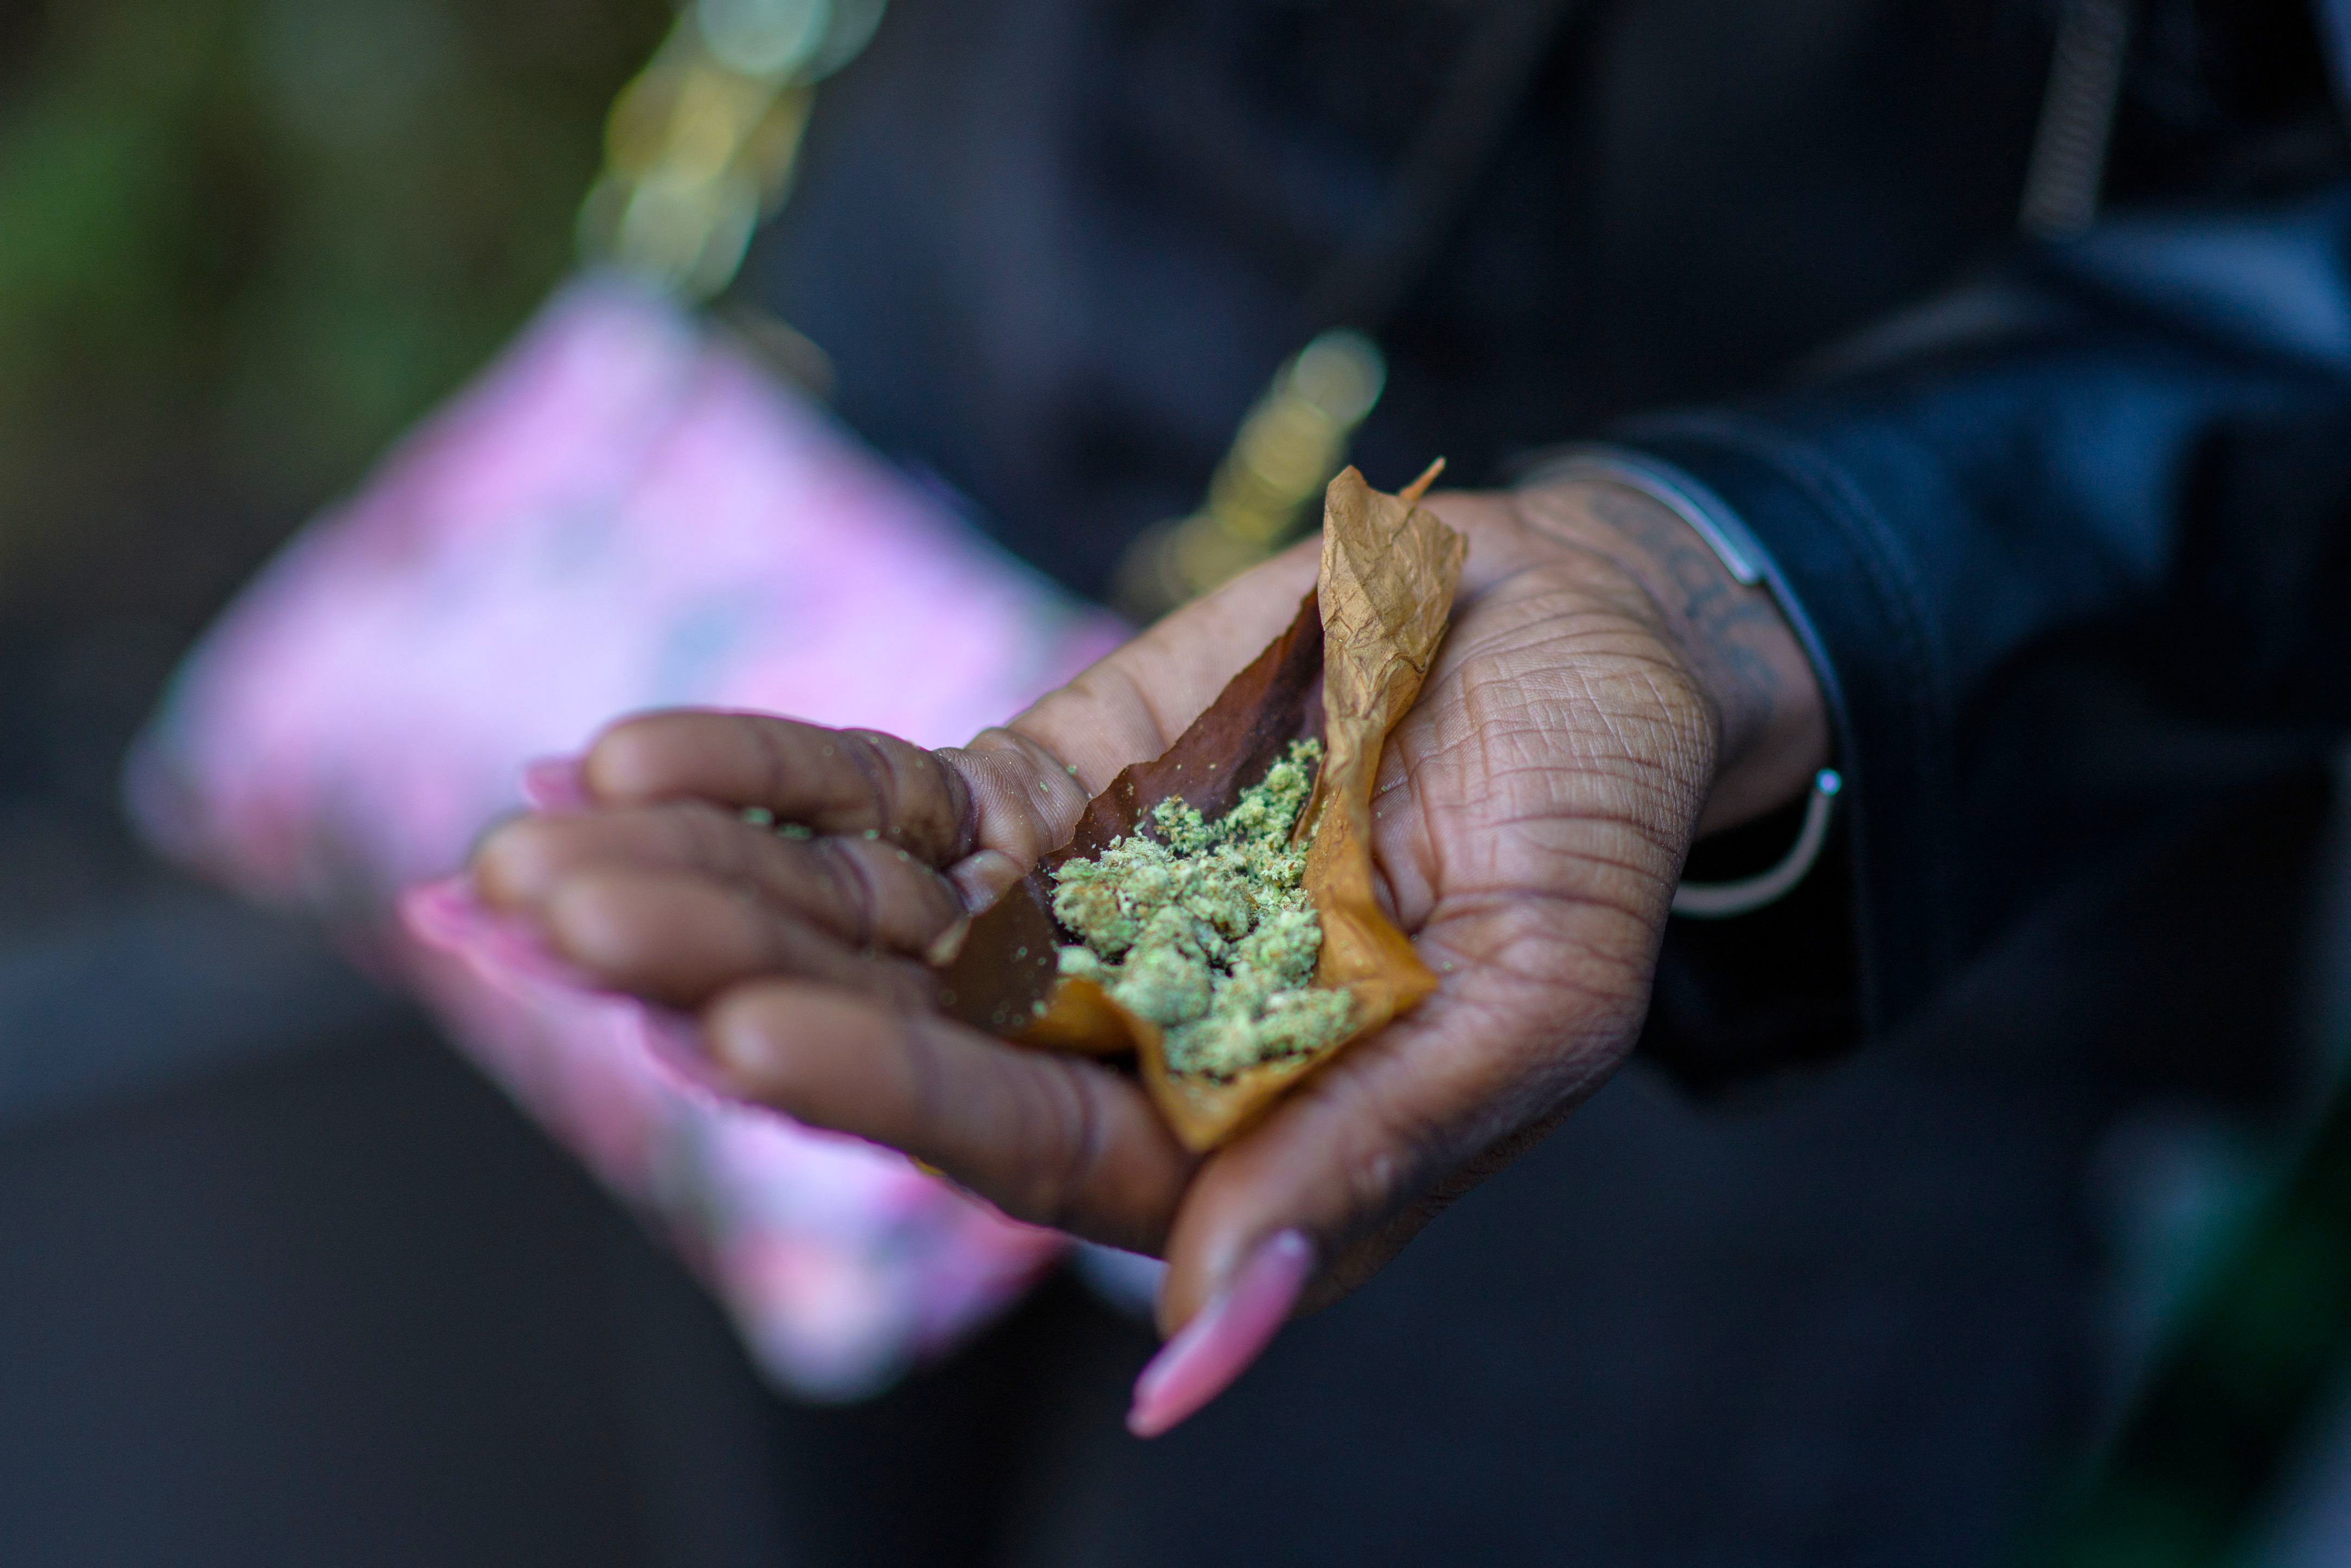 A person rolls a 'joint' during the NYC Cannabis Parade & Rally in support of the legalization of marijuana for recreational and medical use, on May 1, 2021 in New York City. - New York Governor Andrew Cuomo signed legislation legalizing recreational marijuana on March 31, 2021, with a large chunk of tax revenues from sales set to go to minority communities. (Photo by Angela Weiss / AFP) (Photo by ANGELA WEISS/AFP via Getty Images)